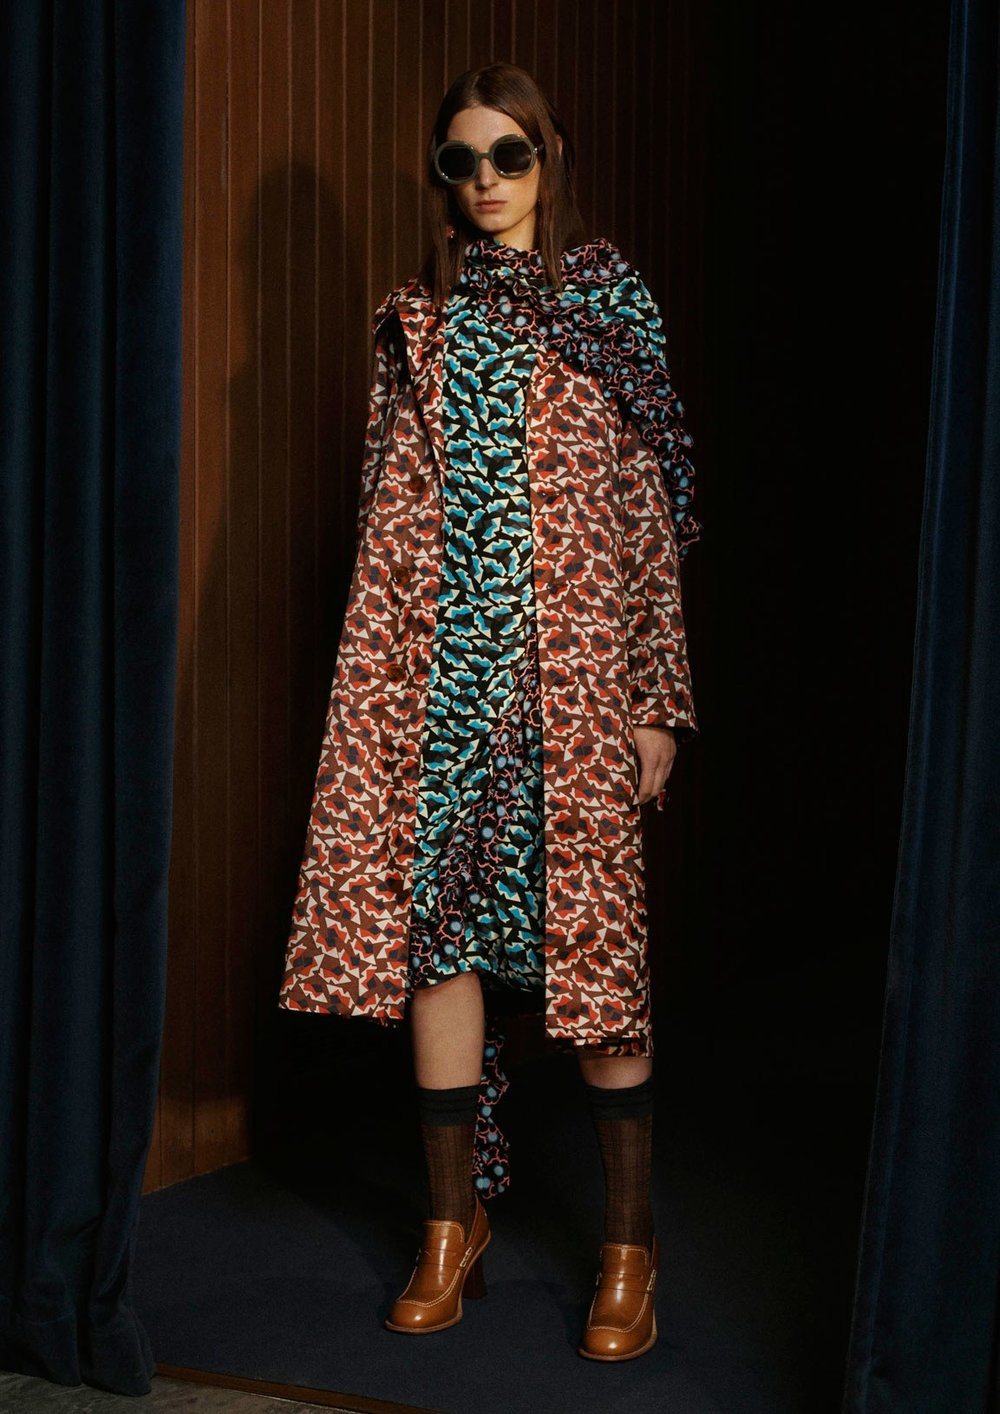 08-MARNI-RESORT-2018-.jpg